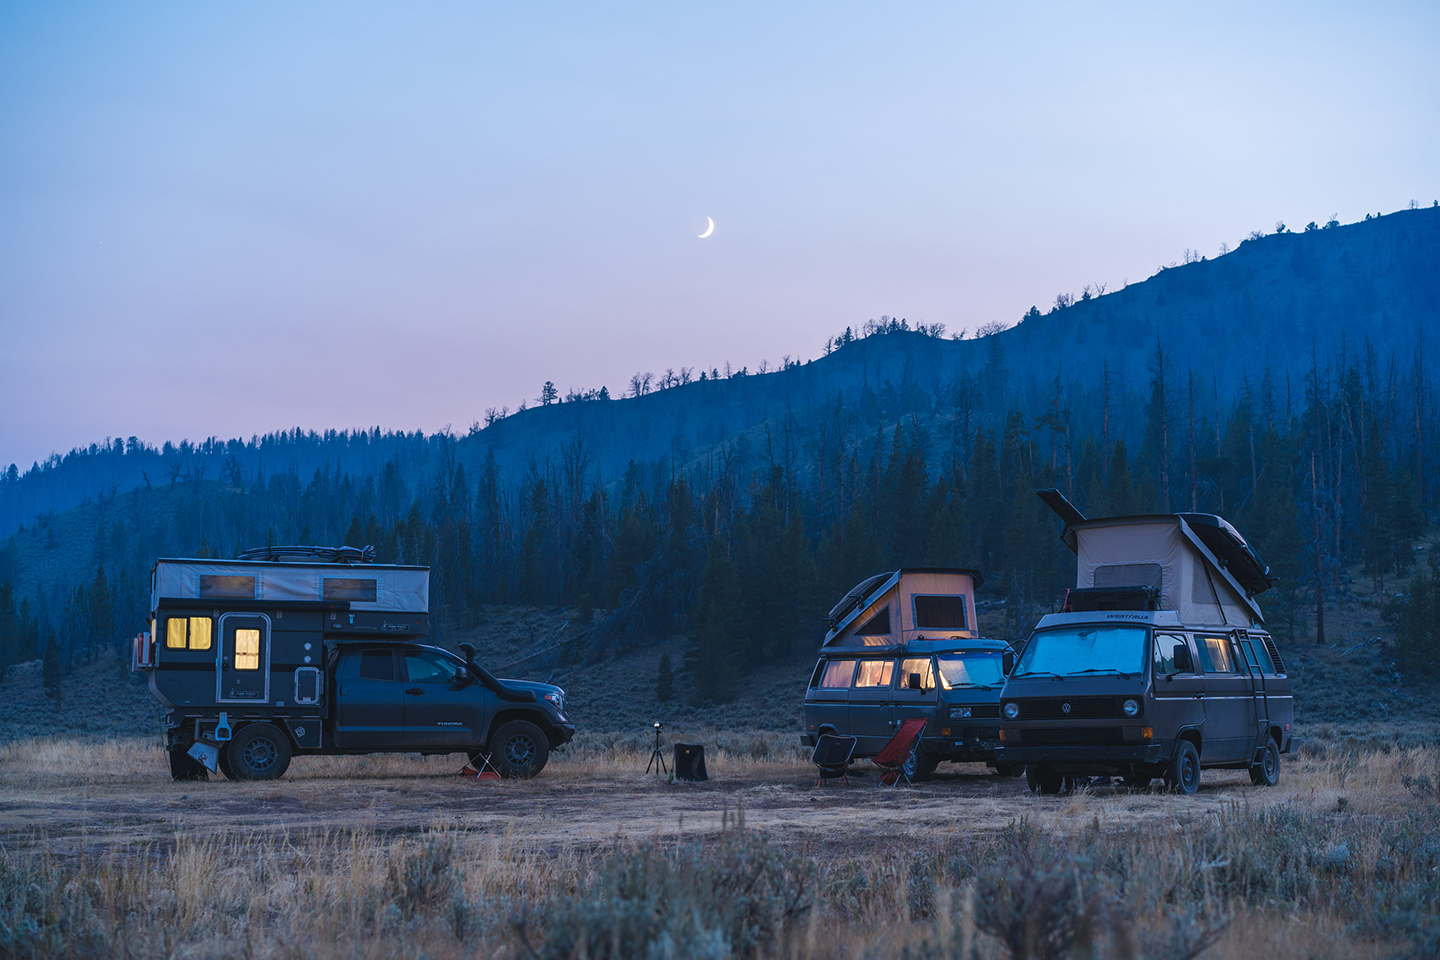 Three camper vans are parked in an open field at dusk.